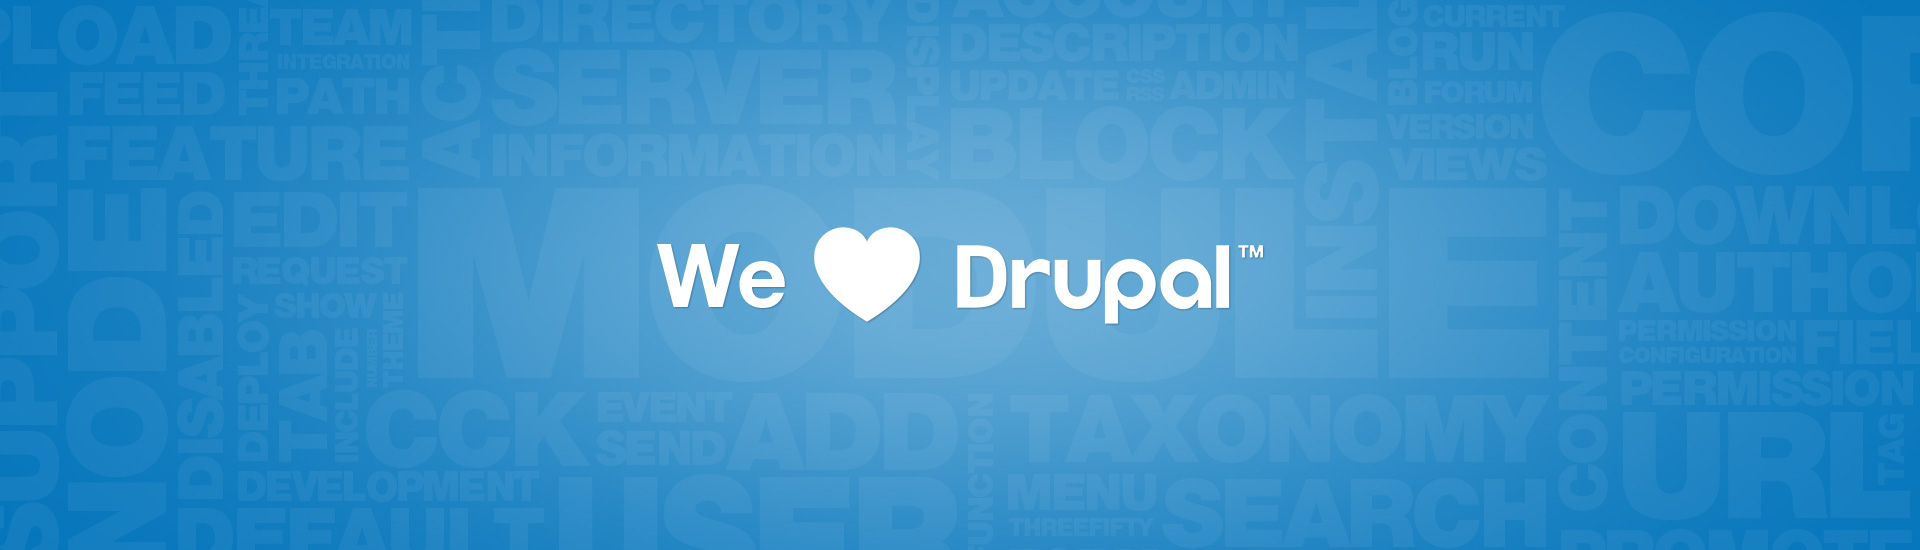 Web Value Agency, Drupal Savvy